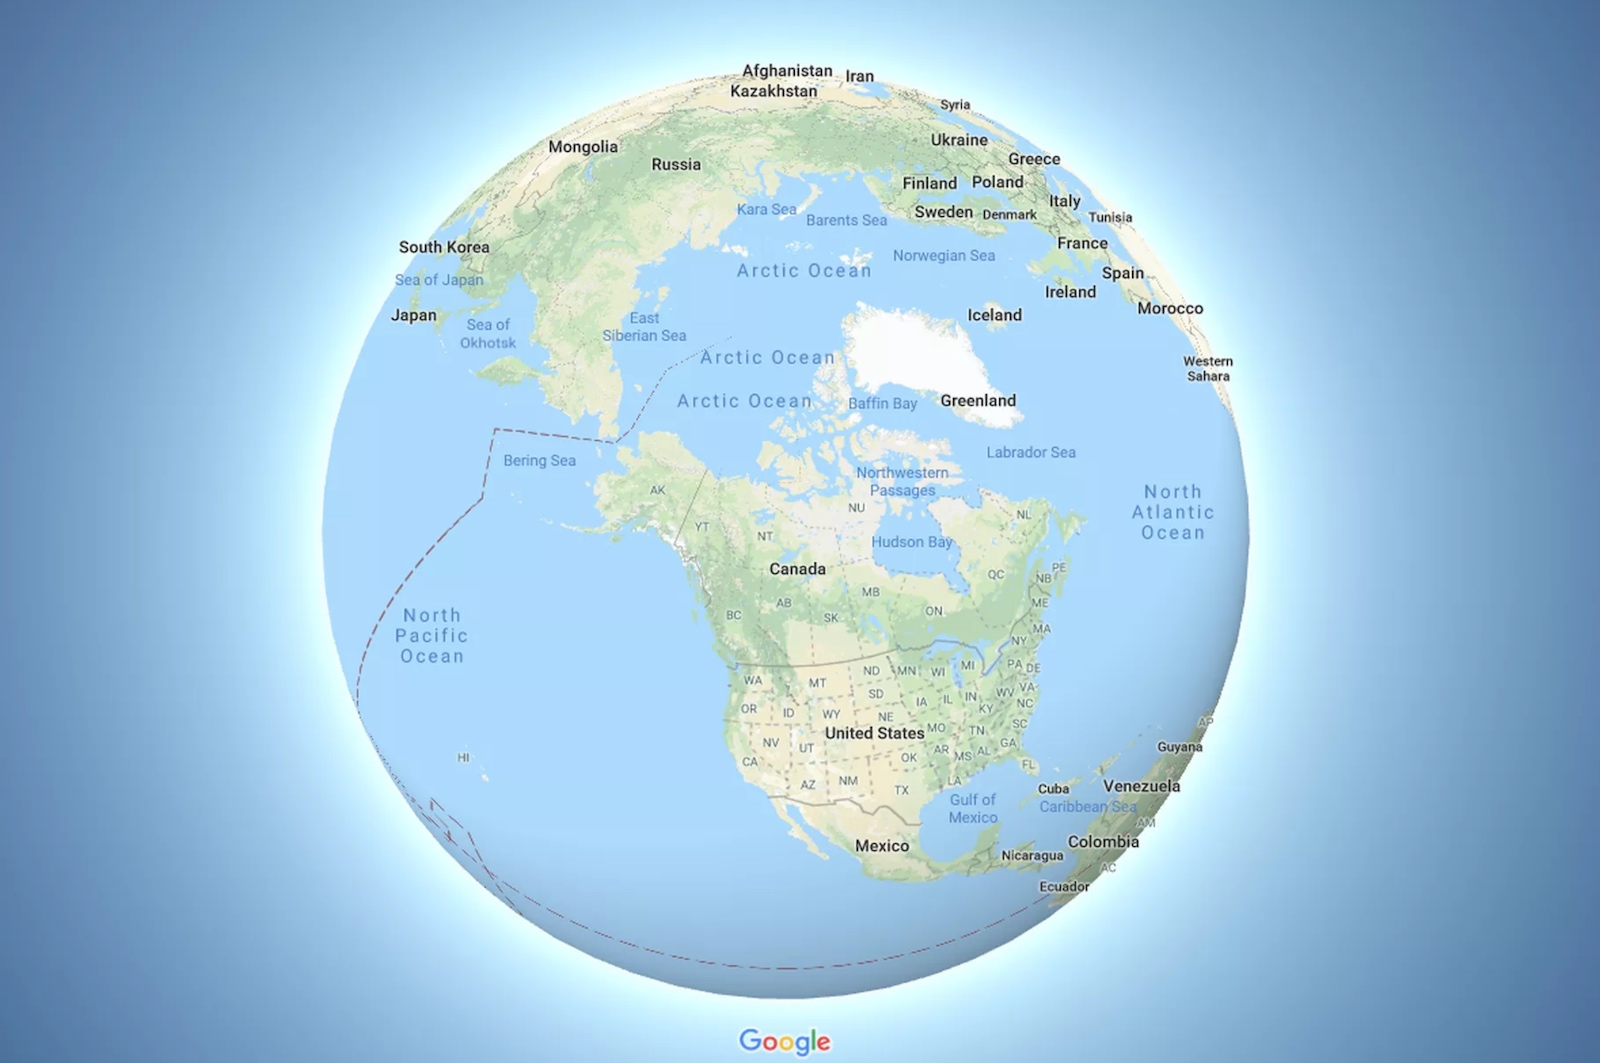 Google Maps surface becomes a globe (2018)